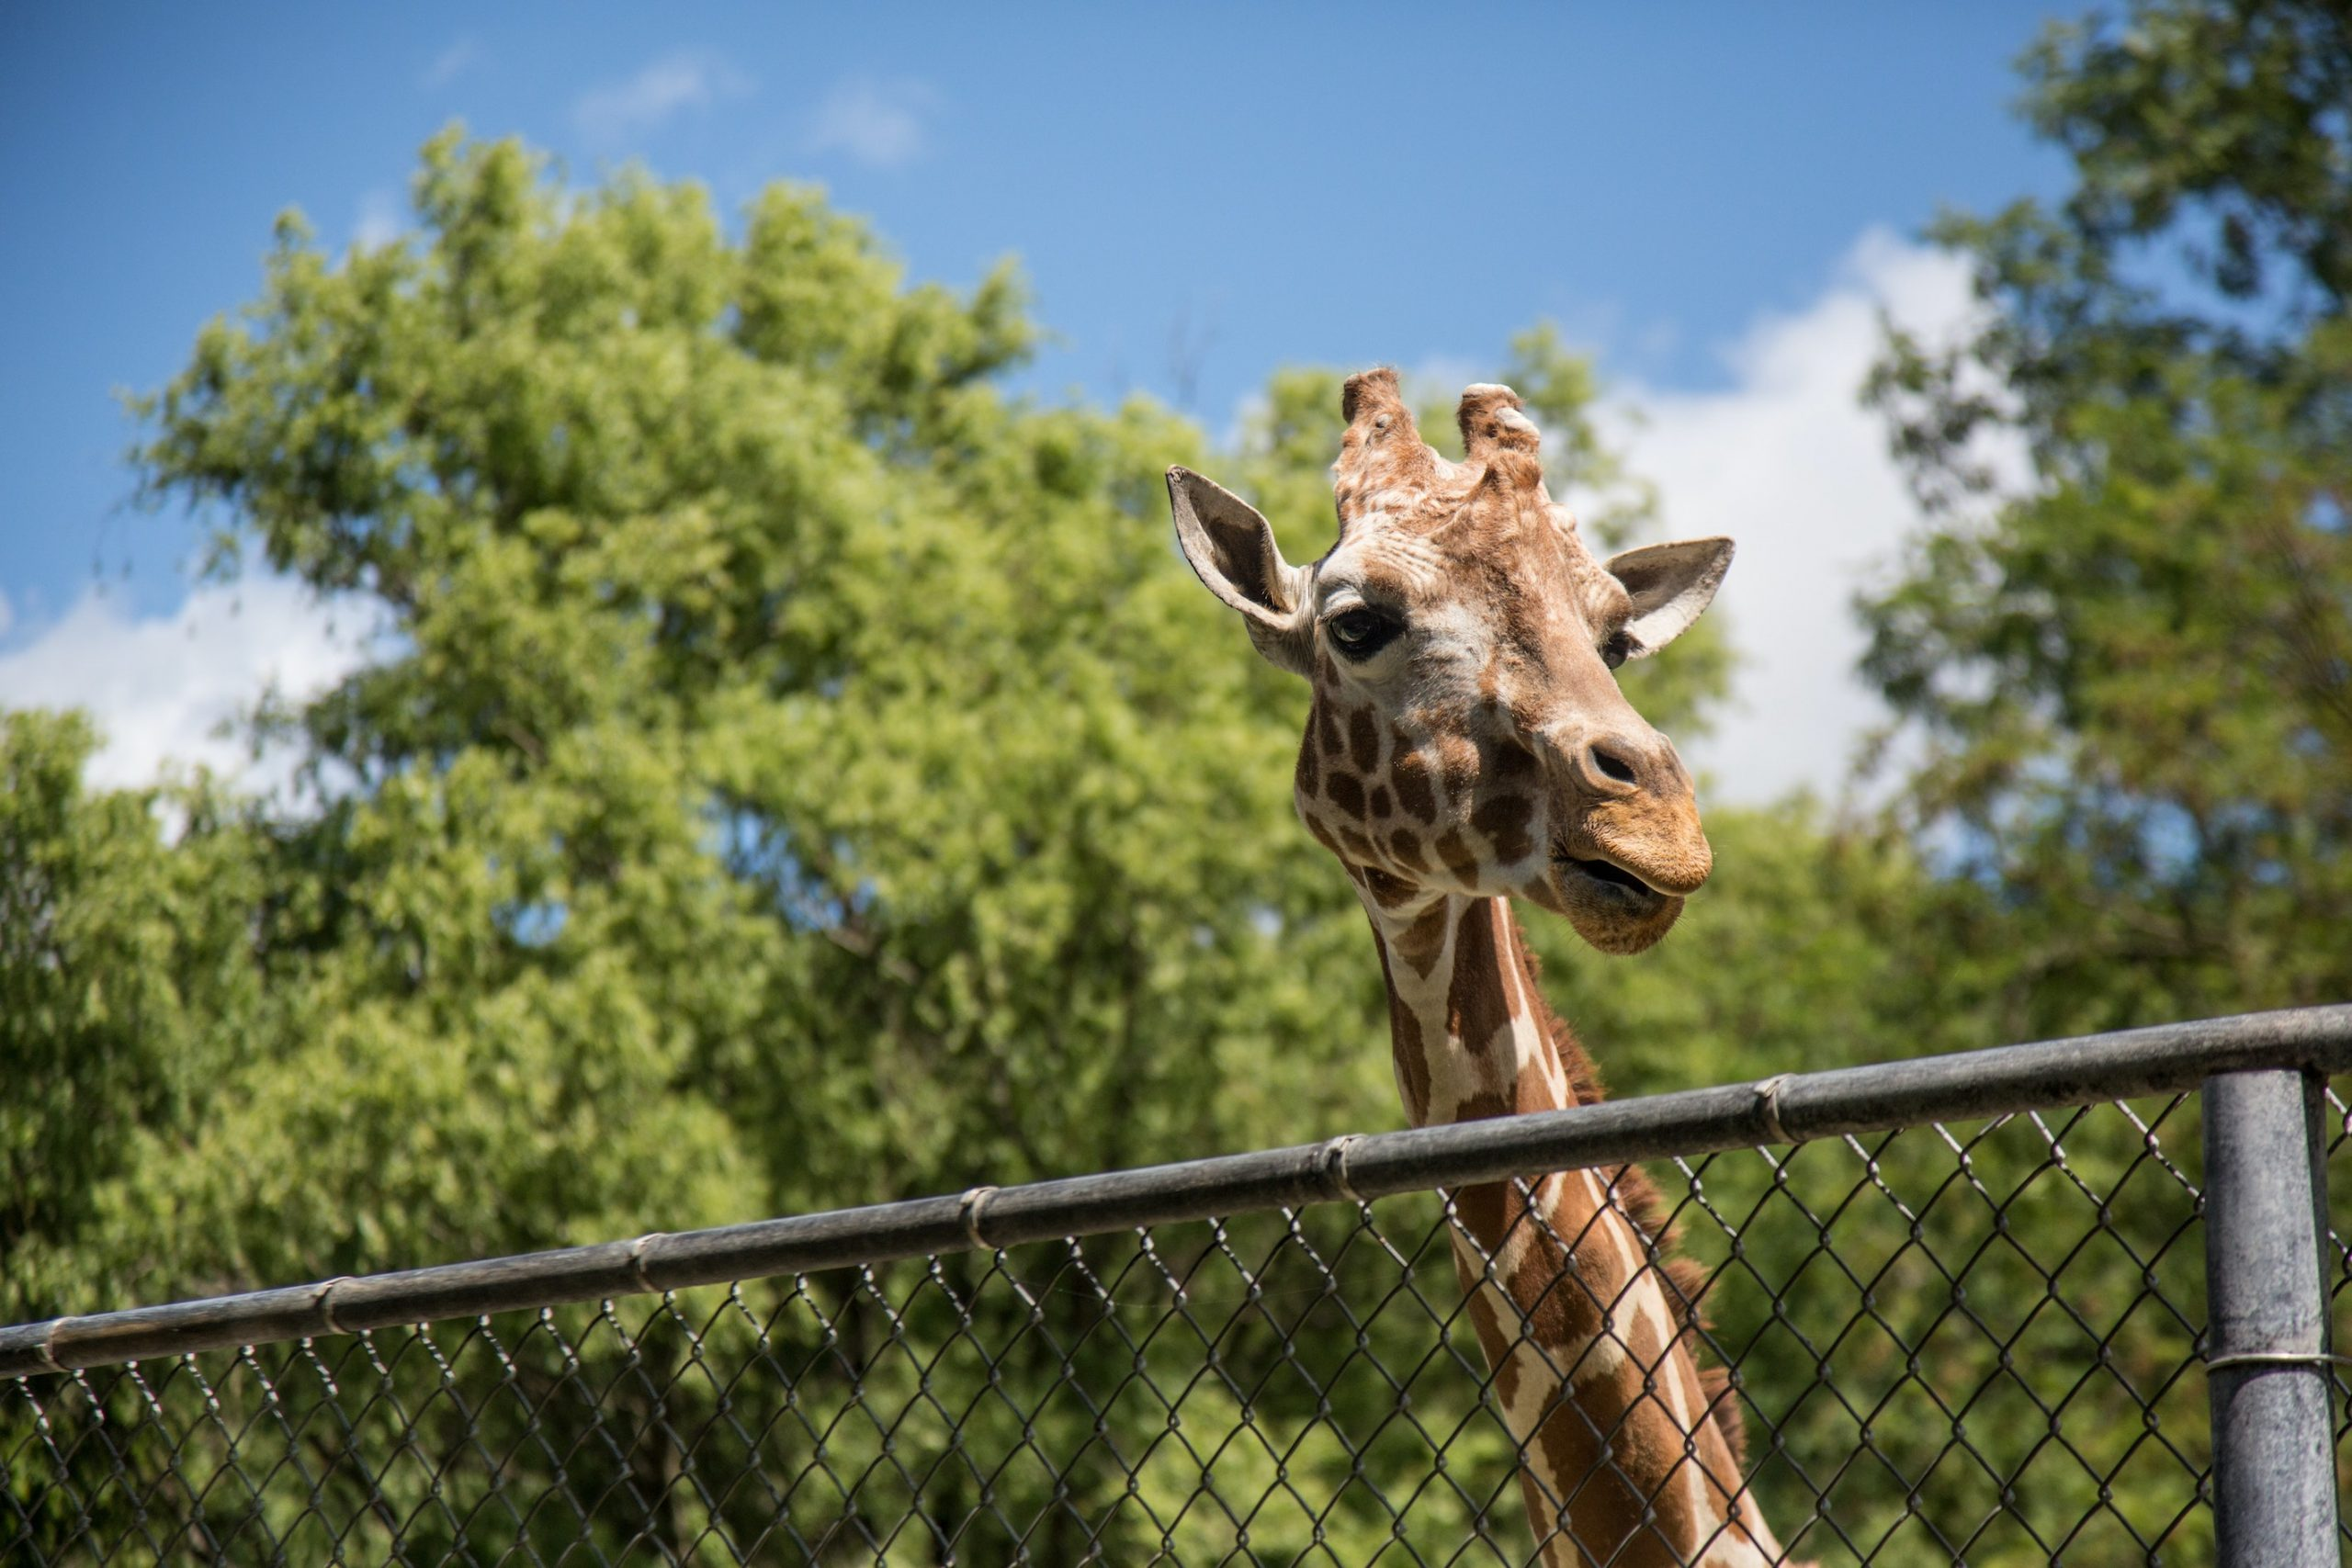 Why You Need To Keep An Extra Eye On Children At The Zoo